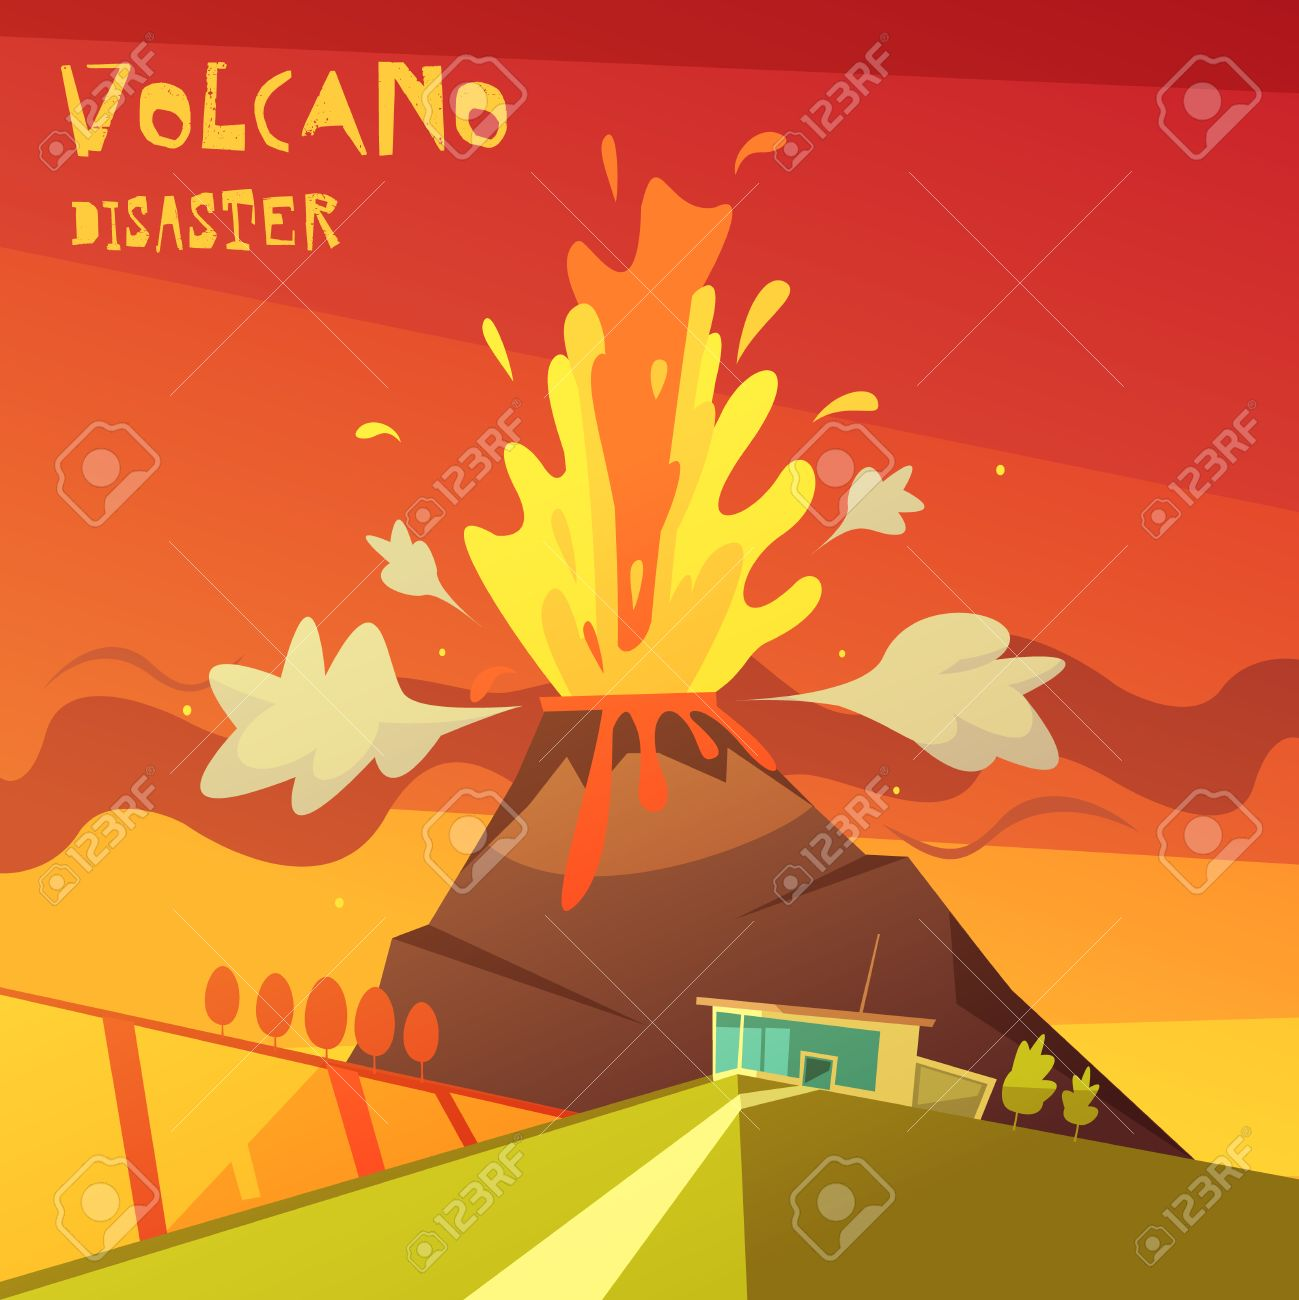 Couleur Catastrophe Volcan Dessin Animé Illustration Lave